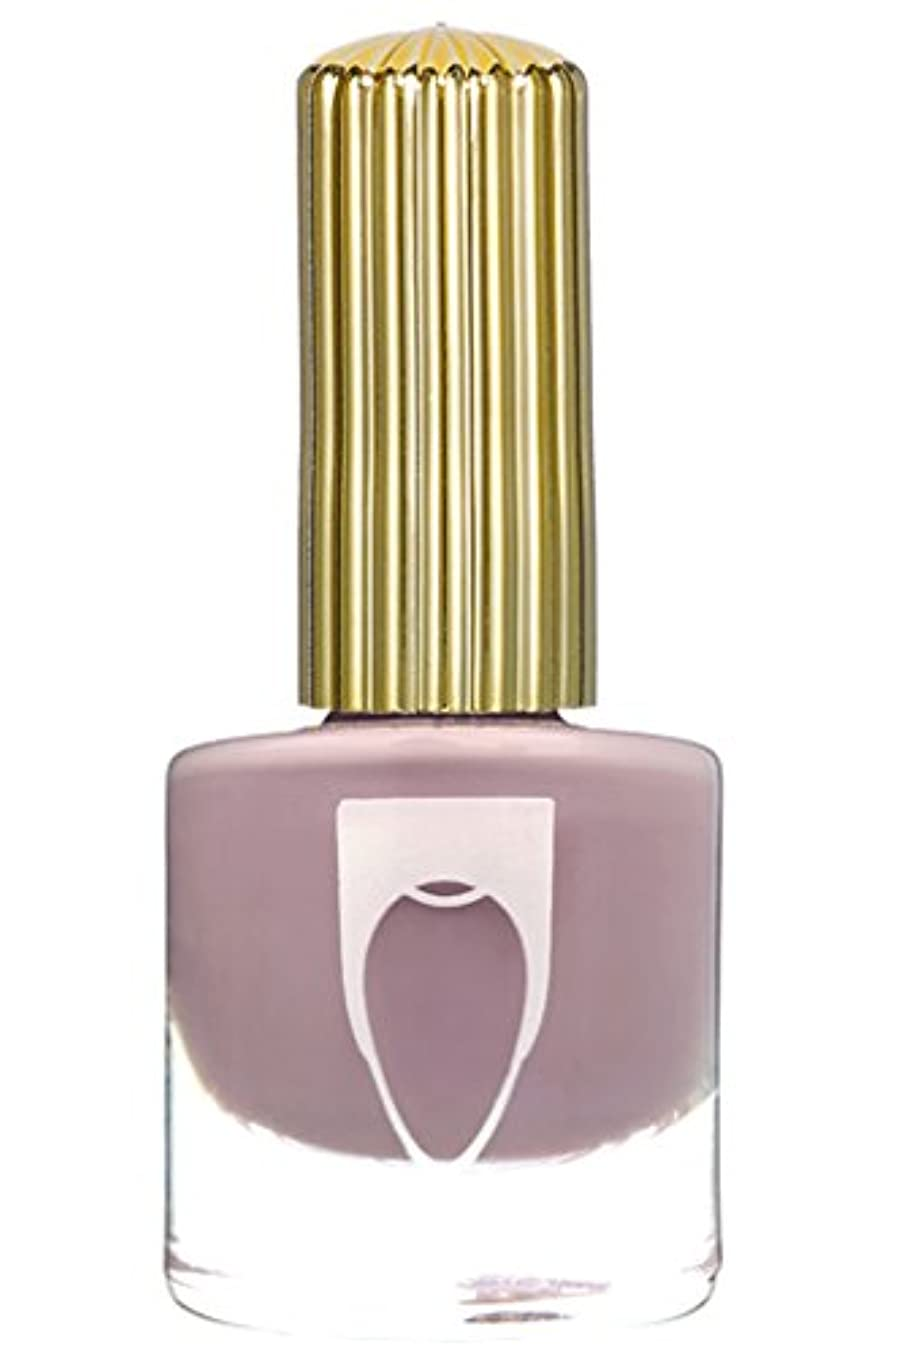 Floss Gloss Ltd Pro Nail Lacquer - 'Palazzo Pleasures' - 0.18oz (5.5 ml) - FG039